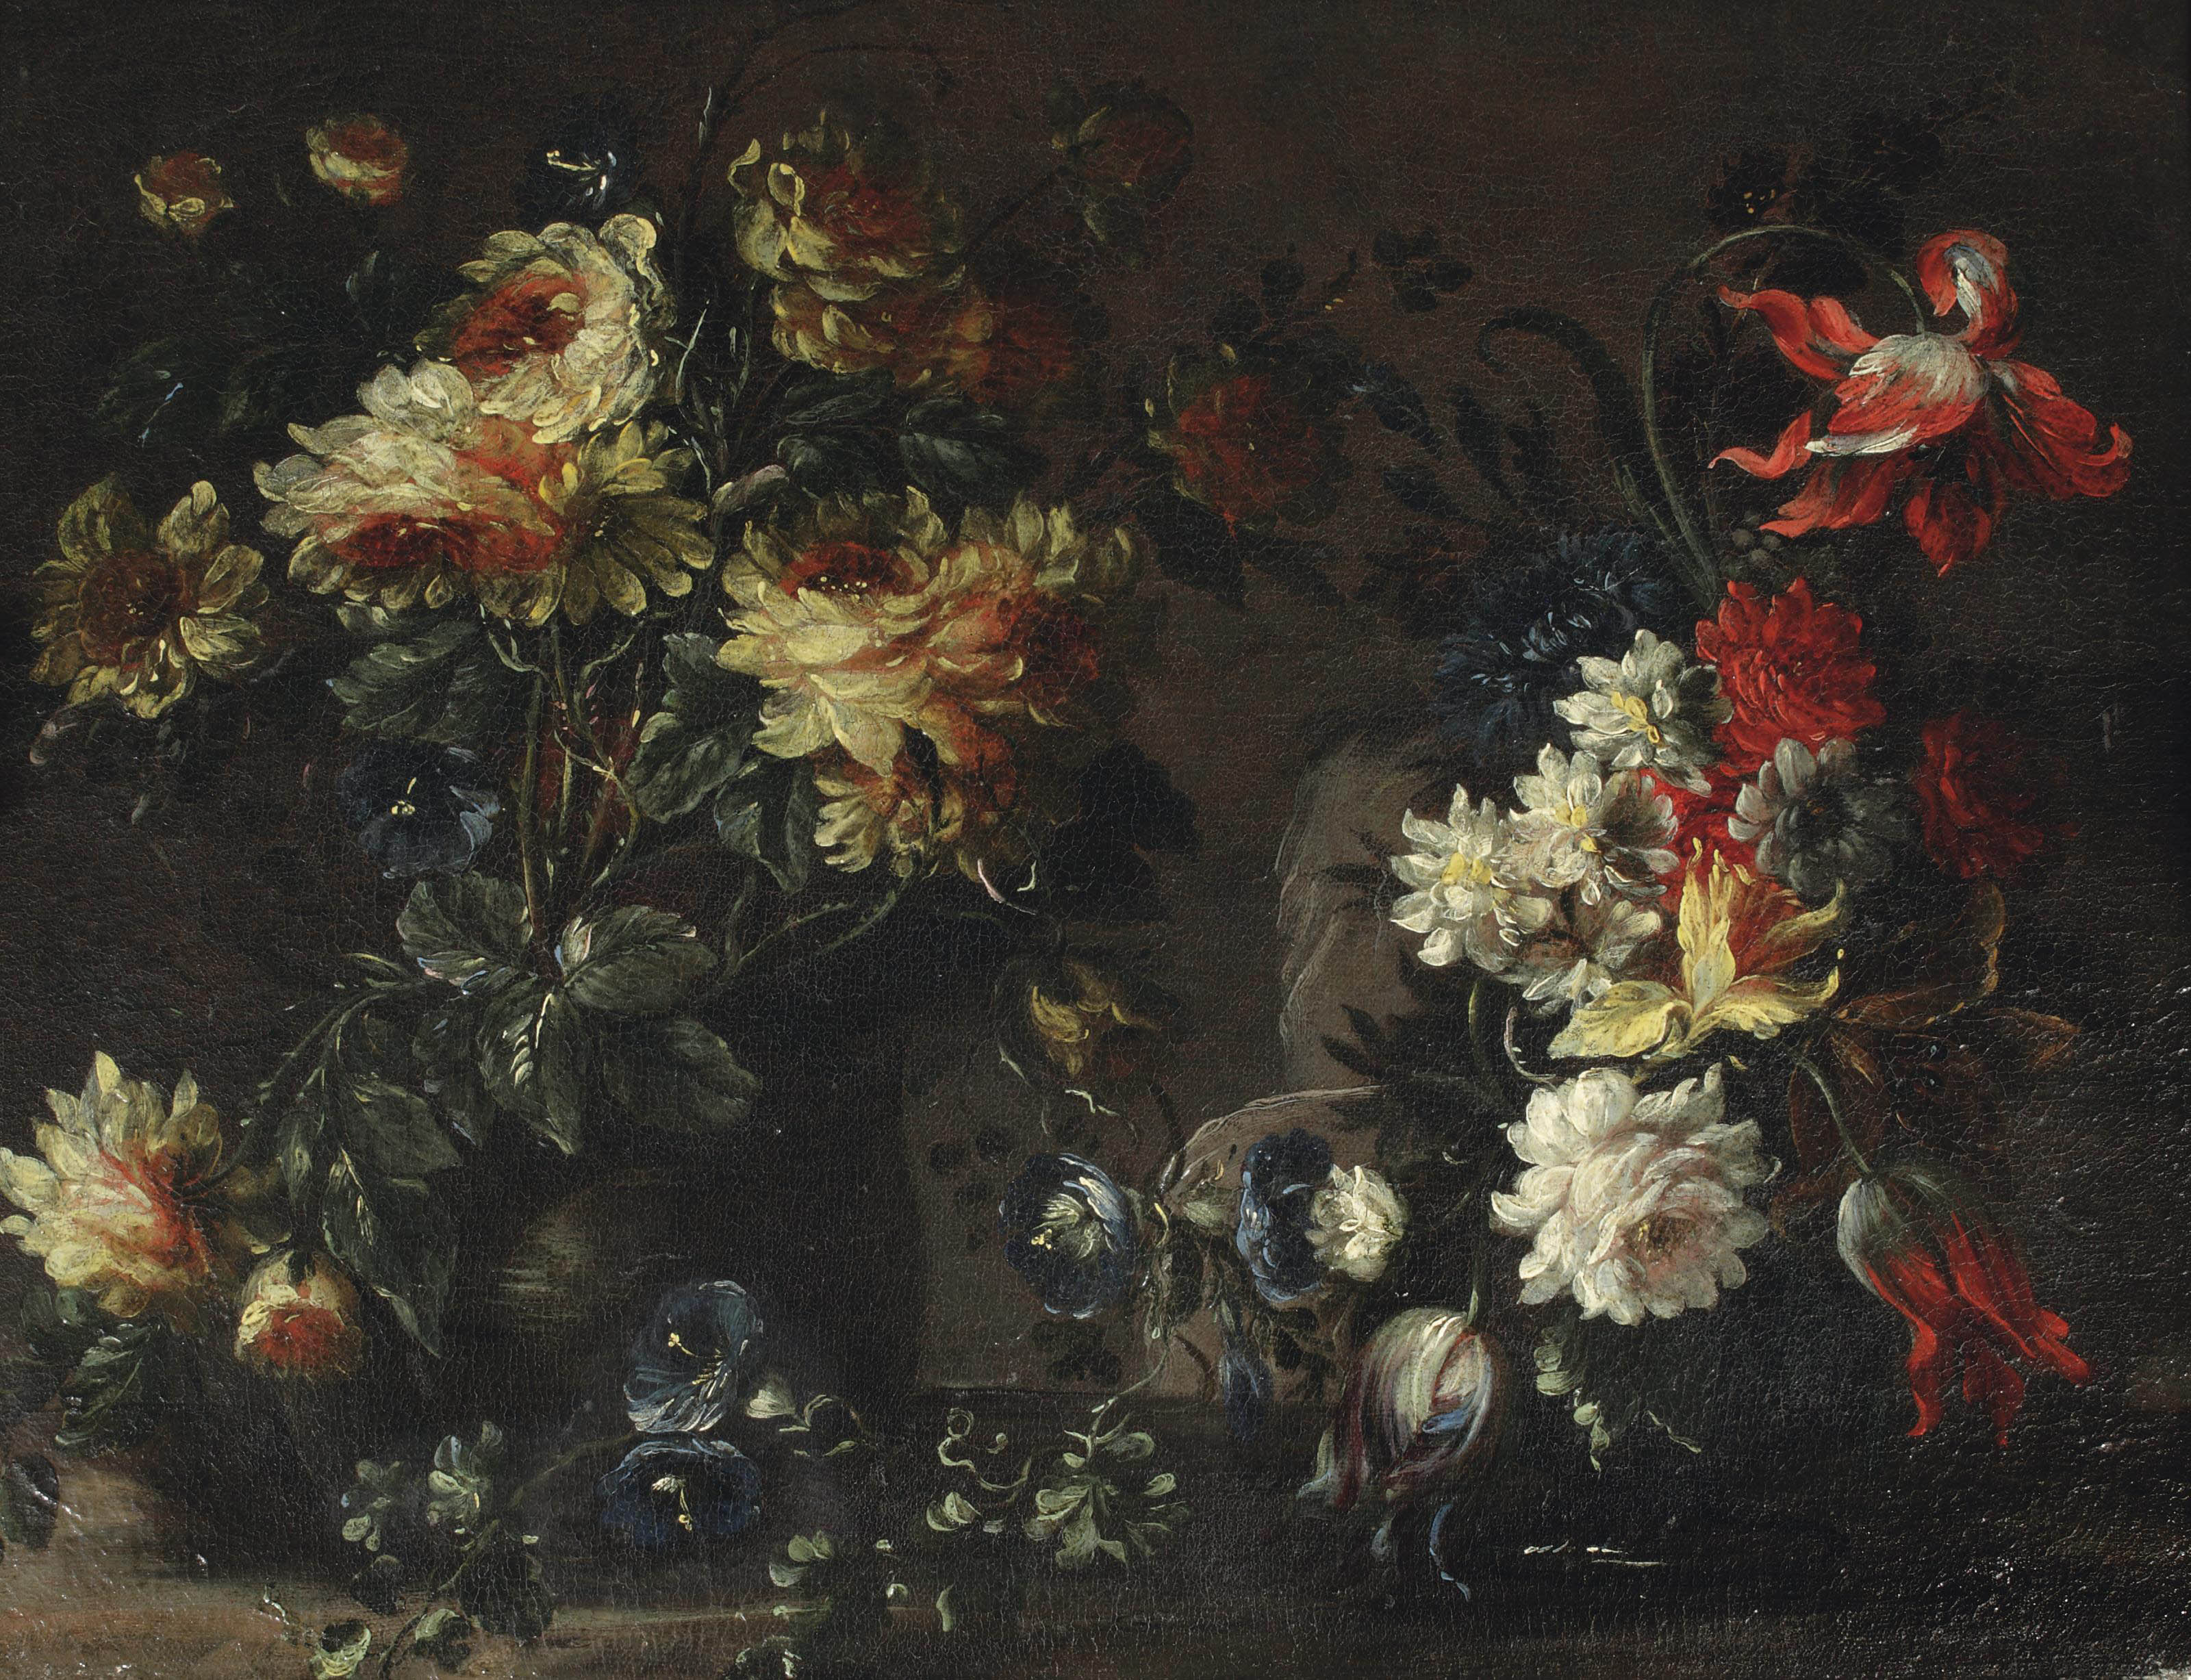 Tulips, roses and other flowers in two vases on a ledge